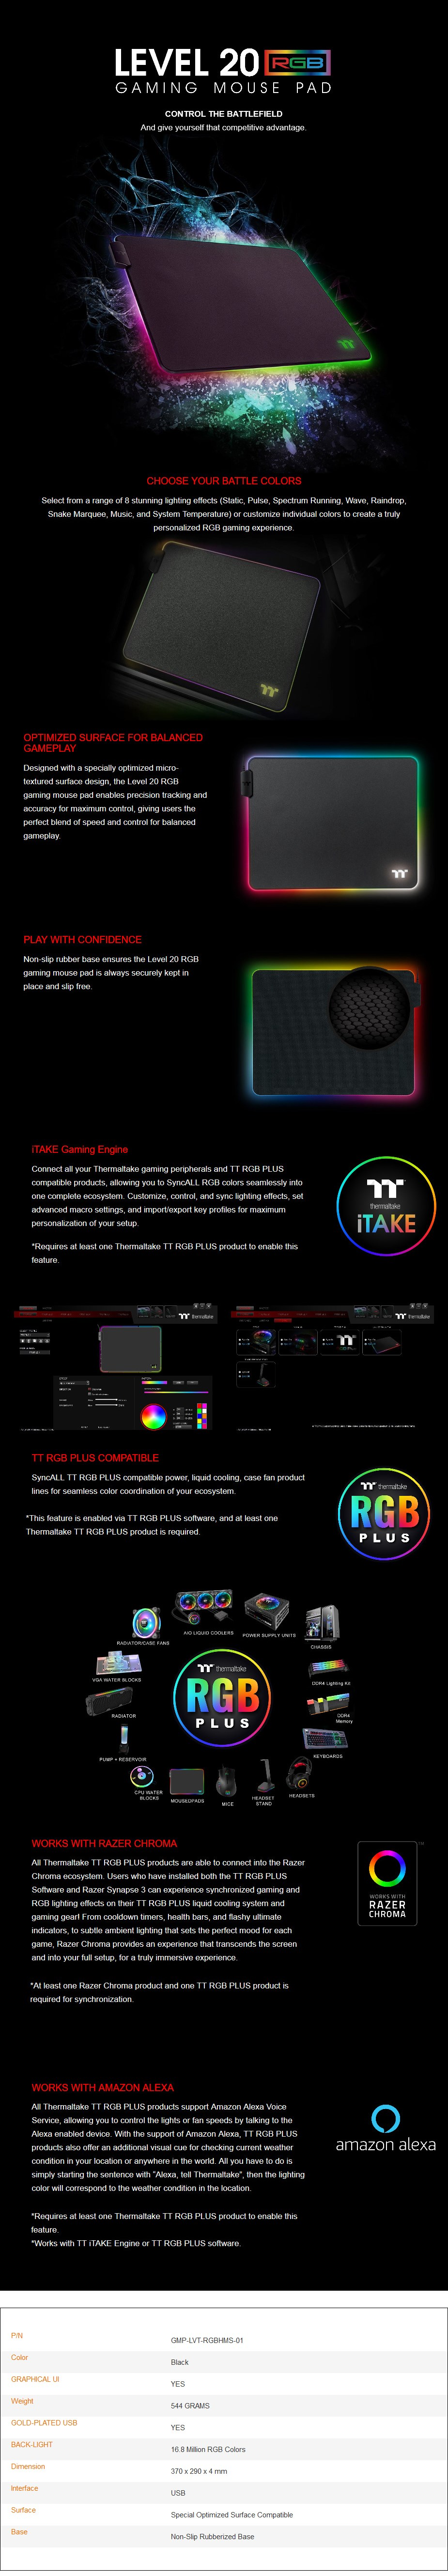 Thermaltake Level 20 RGB Gaming Mouse Pad - Hard Edition - Overview 1